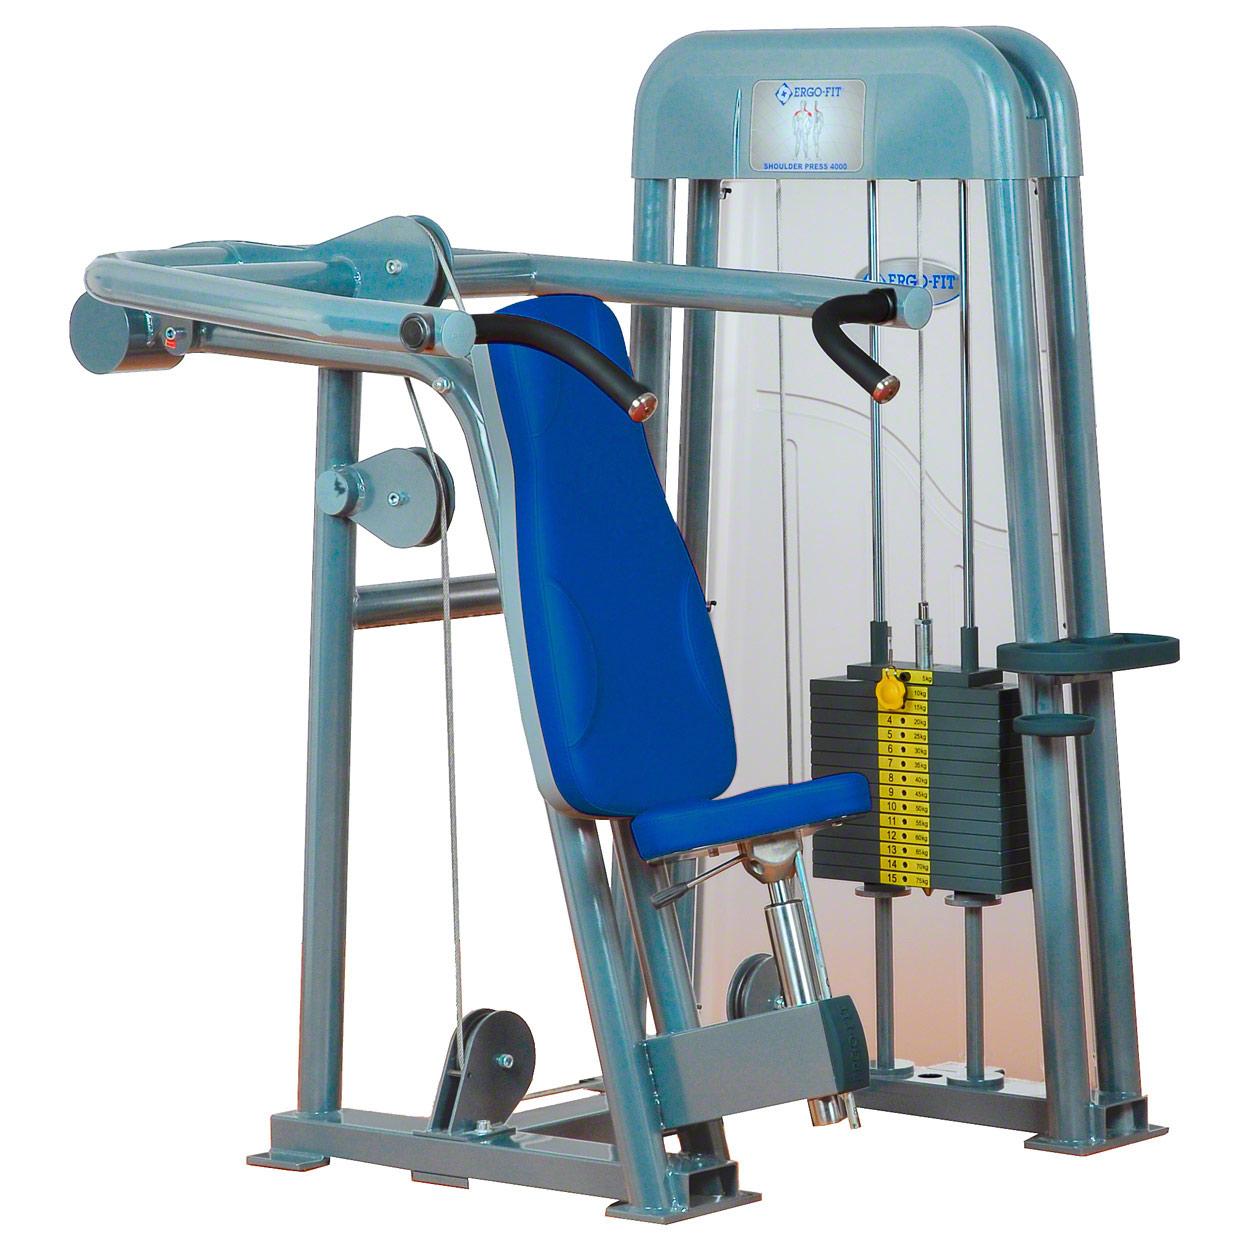 Kraftsportgeräte: ERGO-FIT Shoulder Press 4000